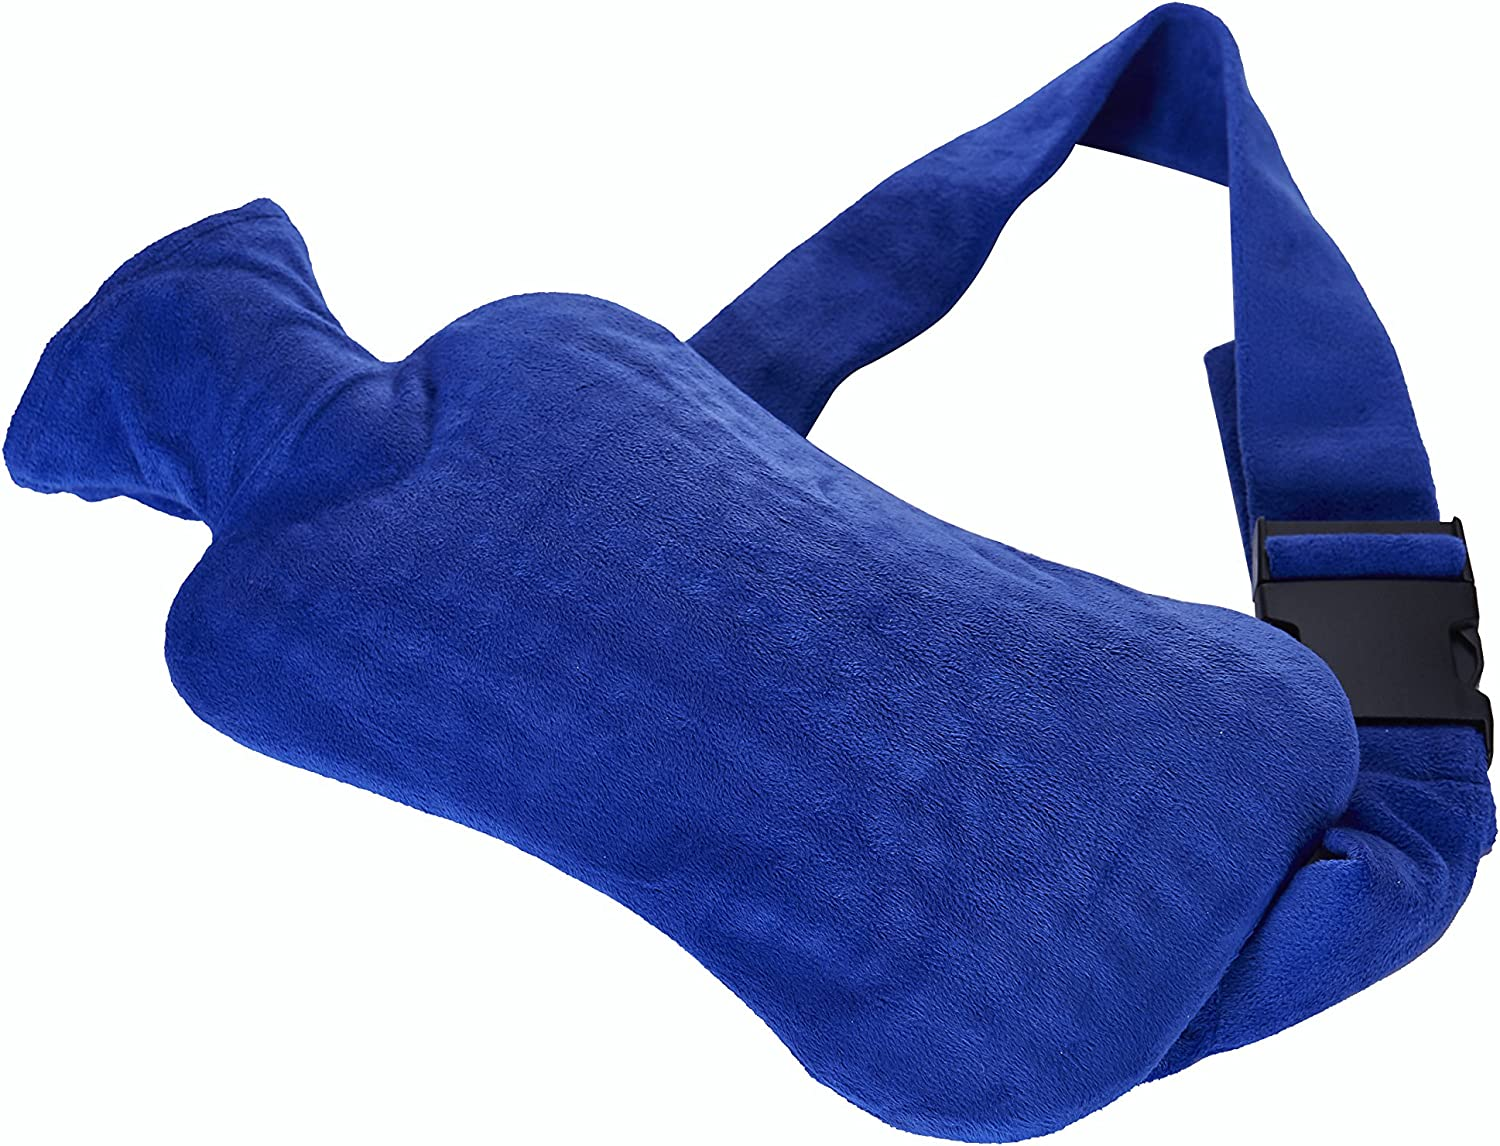 Hot Water Bottle W Belt Hot Water Bottle For Strapping W Respect Specific Control Of Back Pain Kidneys Stomach Or Menstrual Pain Blue Amazon Co Uk Health Personal Care